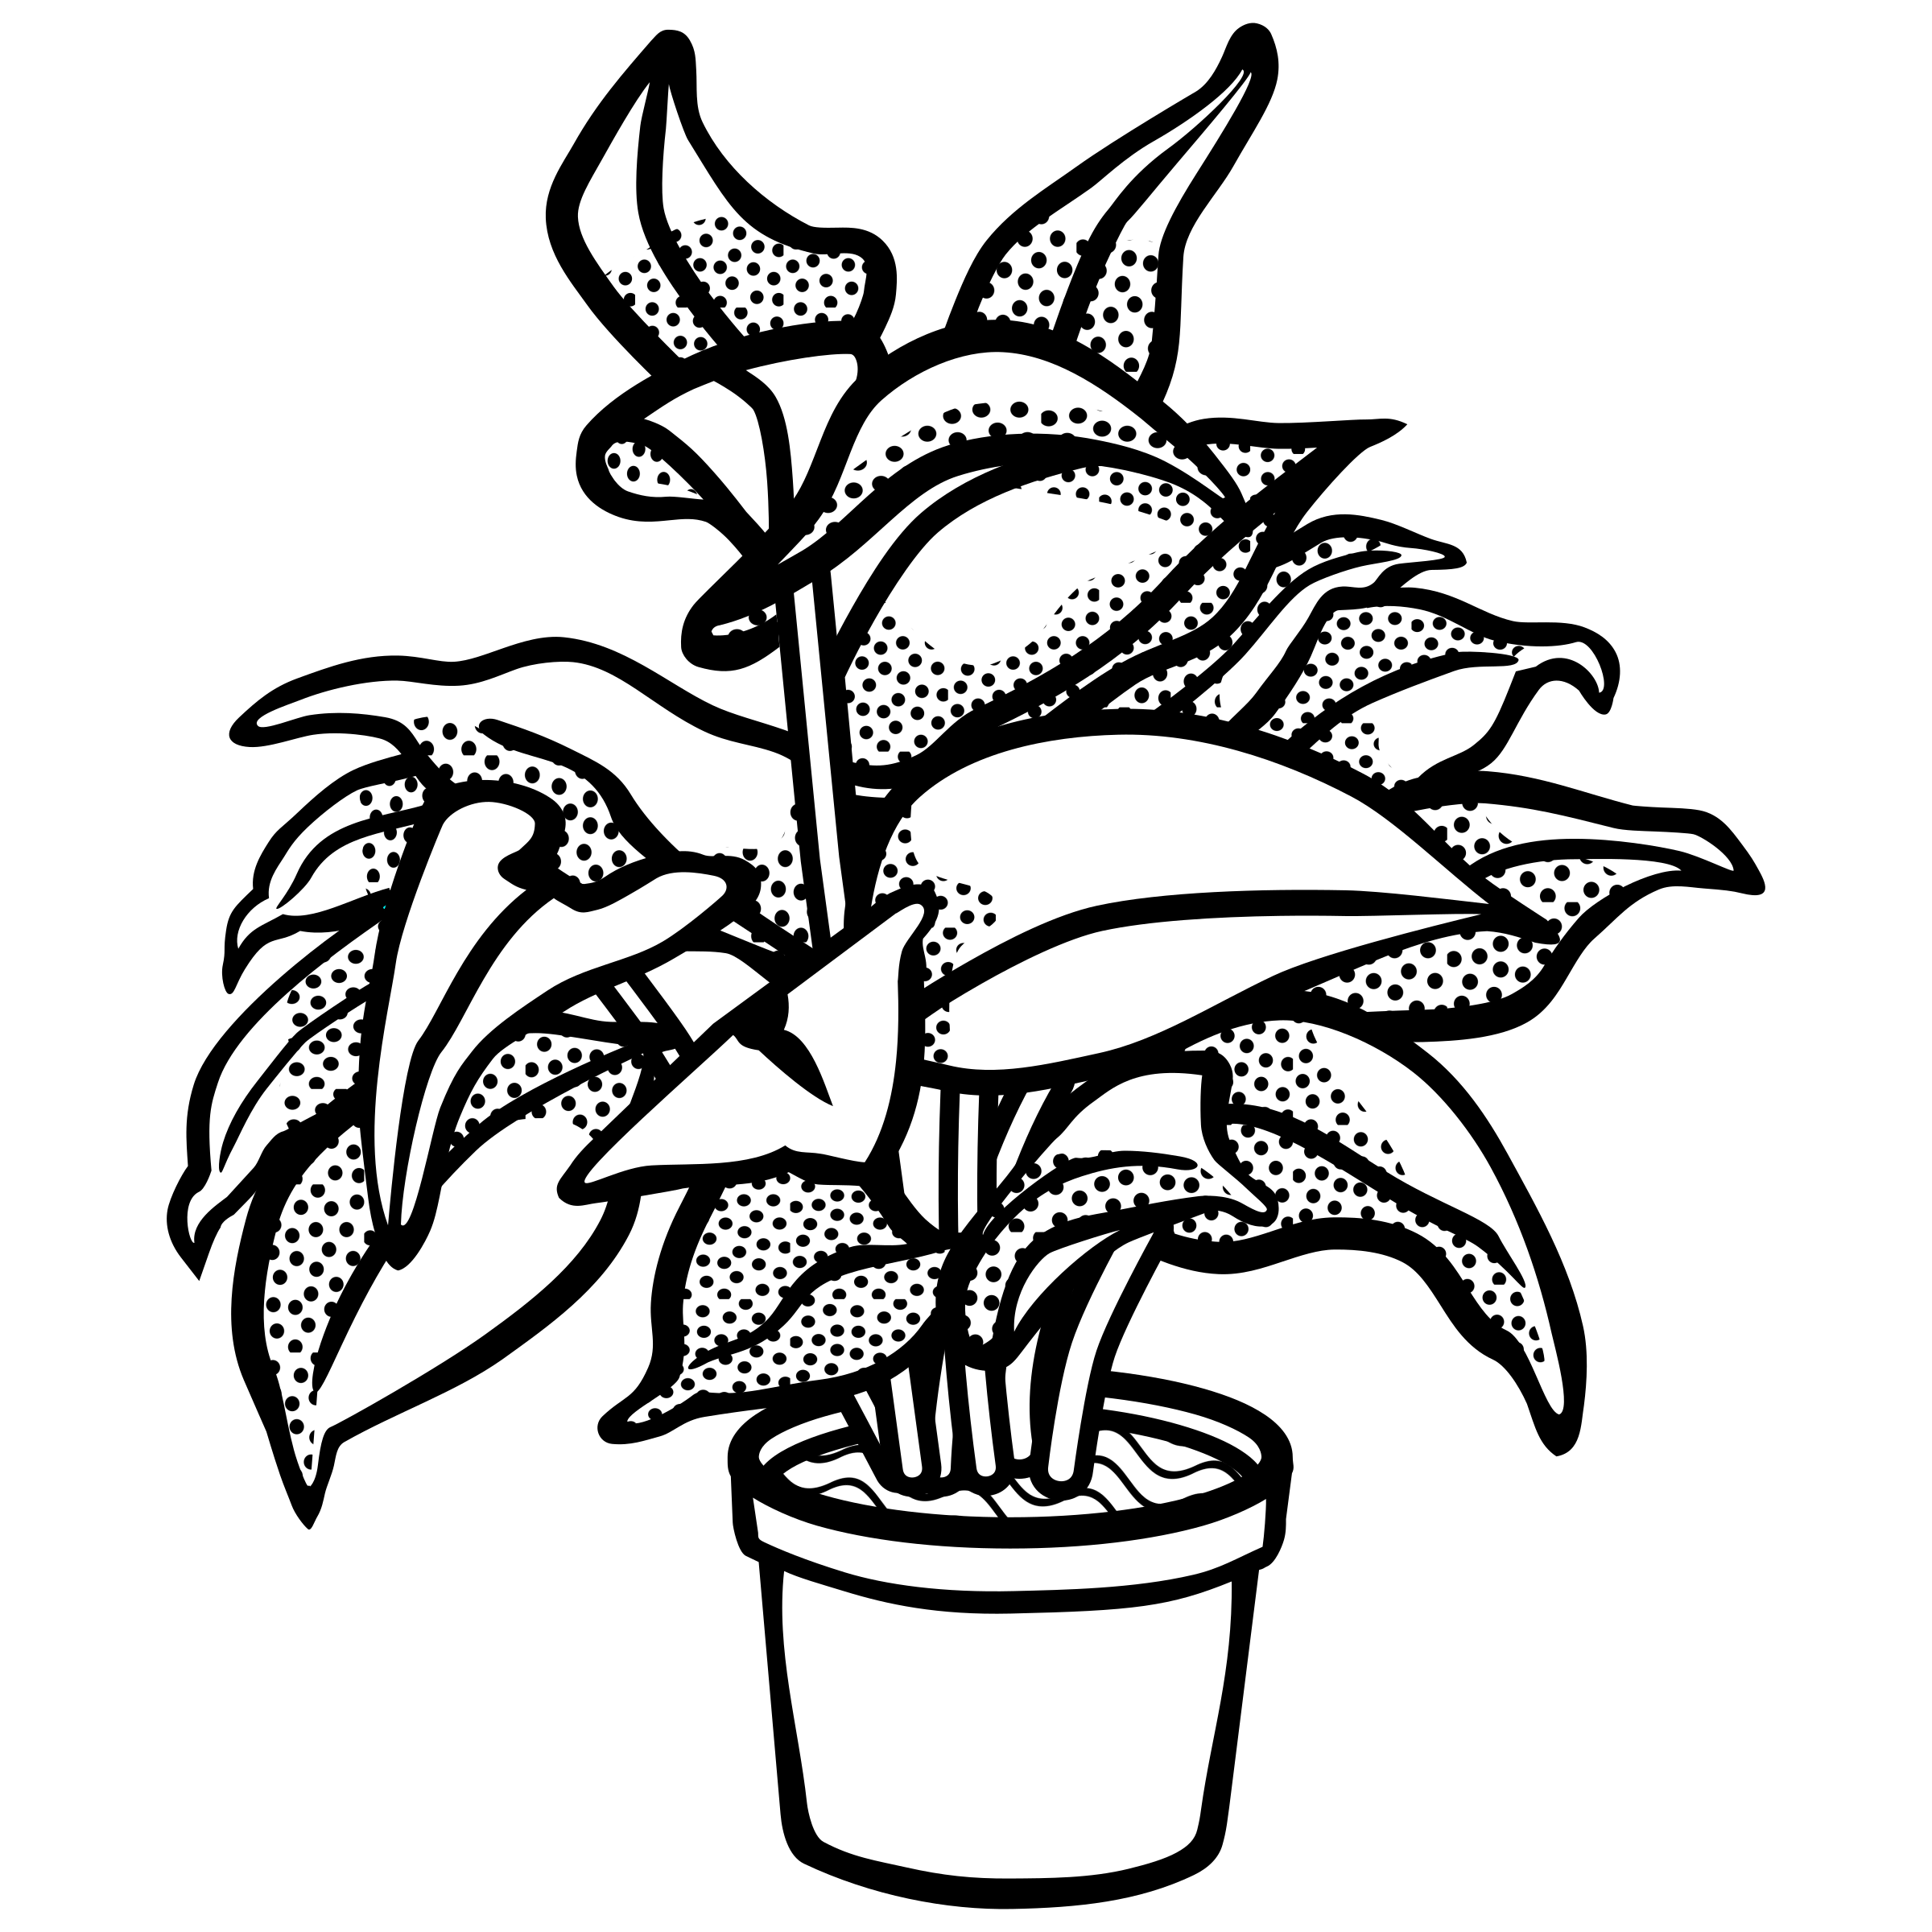 graphic transparent stock vector plants black and white #108258672